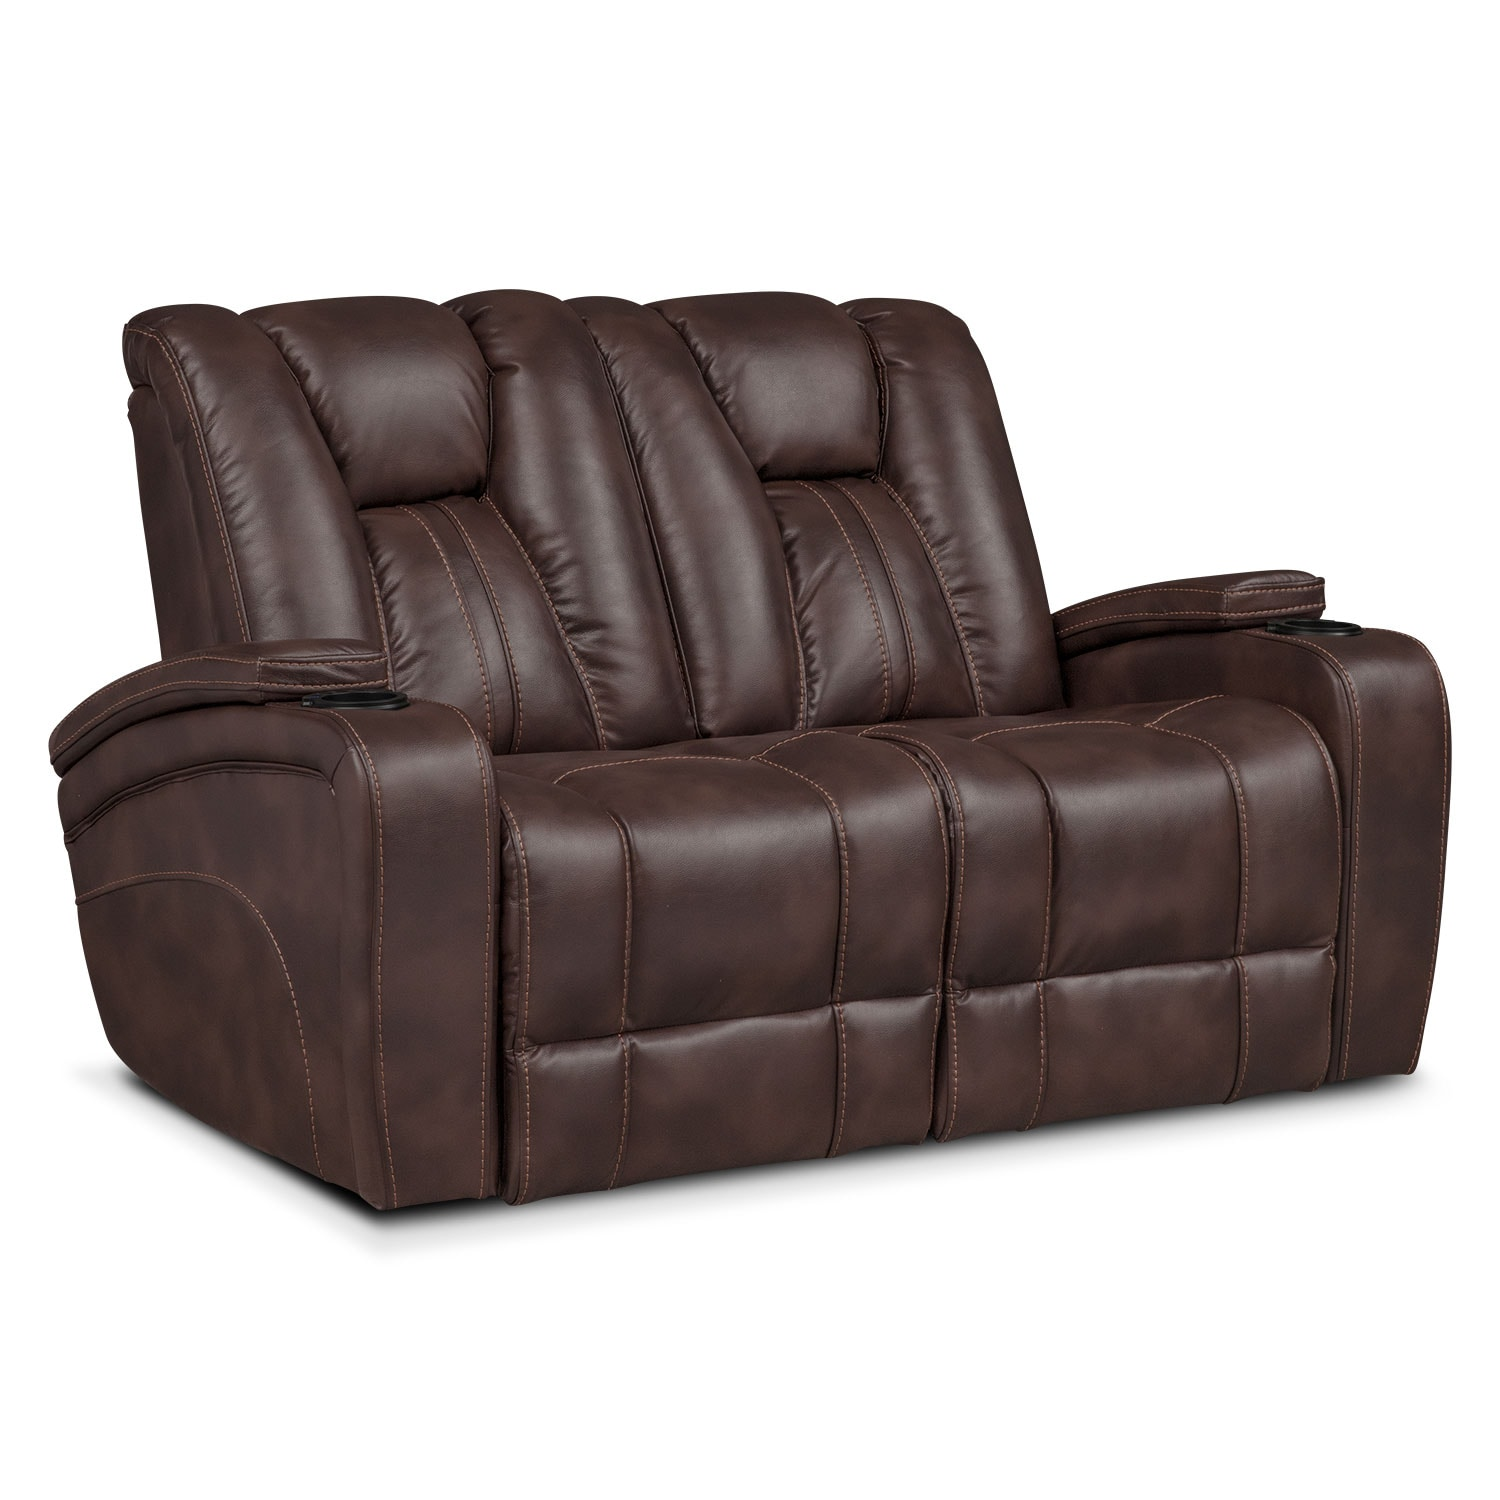 Pulsar Dual Power Loveseat - Brown